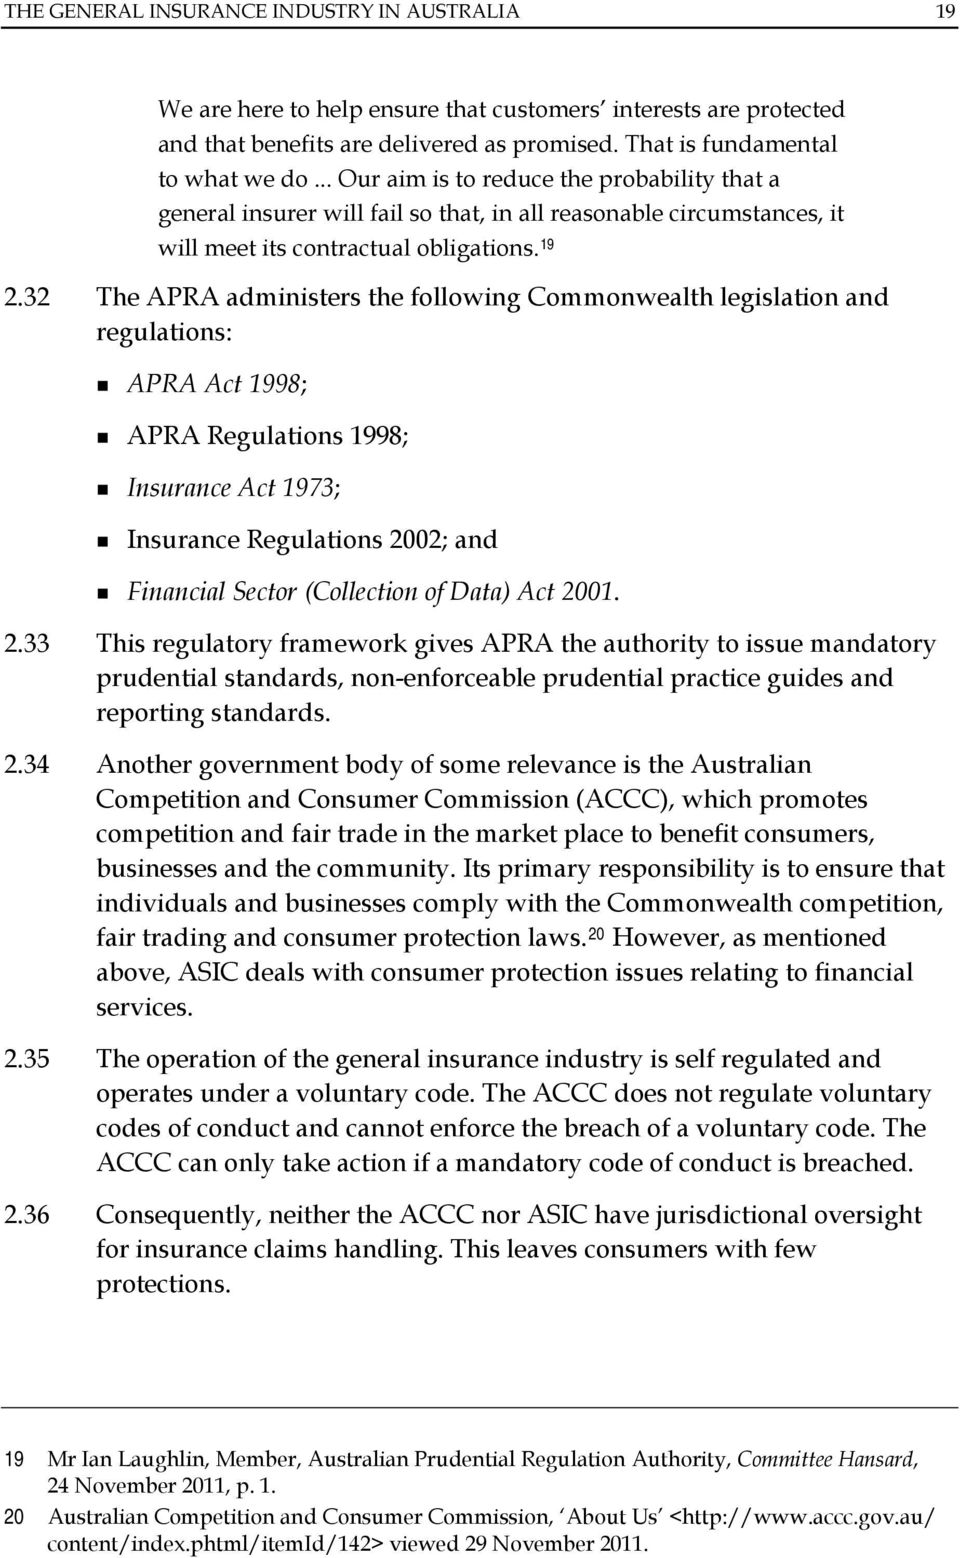 32 The APRA administers the following Commonwealth legislation and regulations: APRA Act 1998; APRA Regulations 1998; Insurance Act 1973; Insurance Regulations 2002; and Financial Sector (Collection